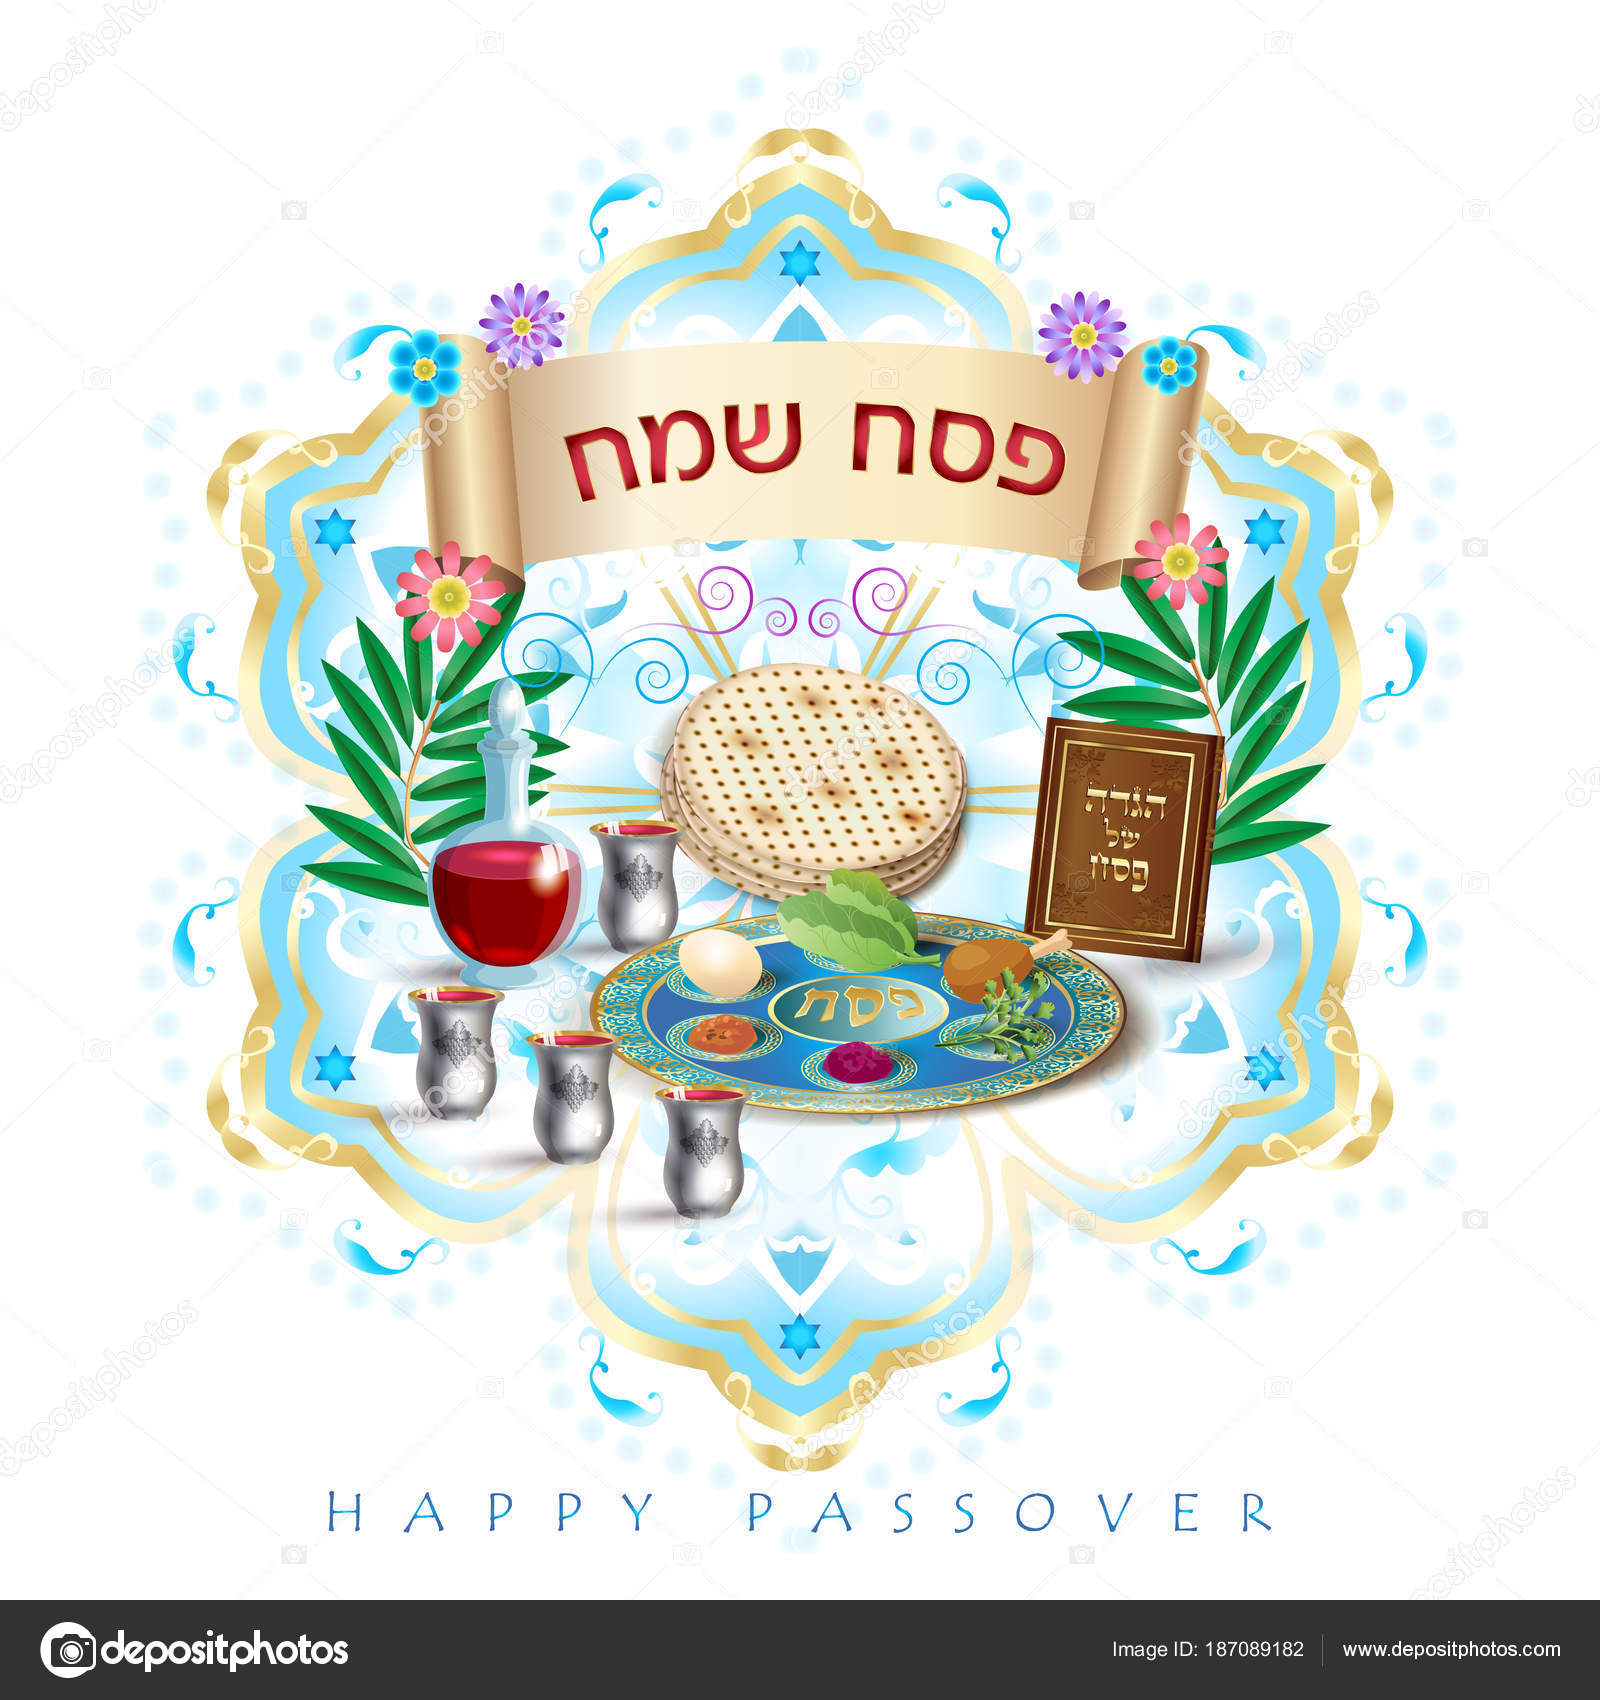 Happy passover hebrew lettering jewish holiday symbols icons set happy passover hebrew lettering jewish holiday symbols icons set four wine glass matza jewish traditional bread for passover festival passover plate kristyandbryce Images